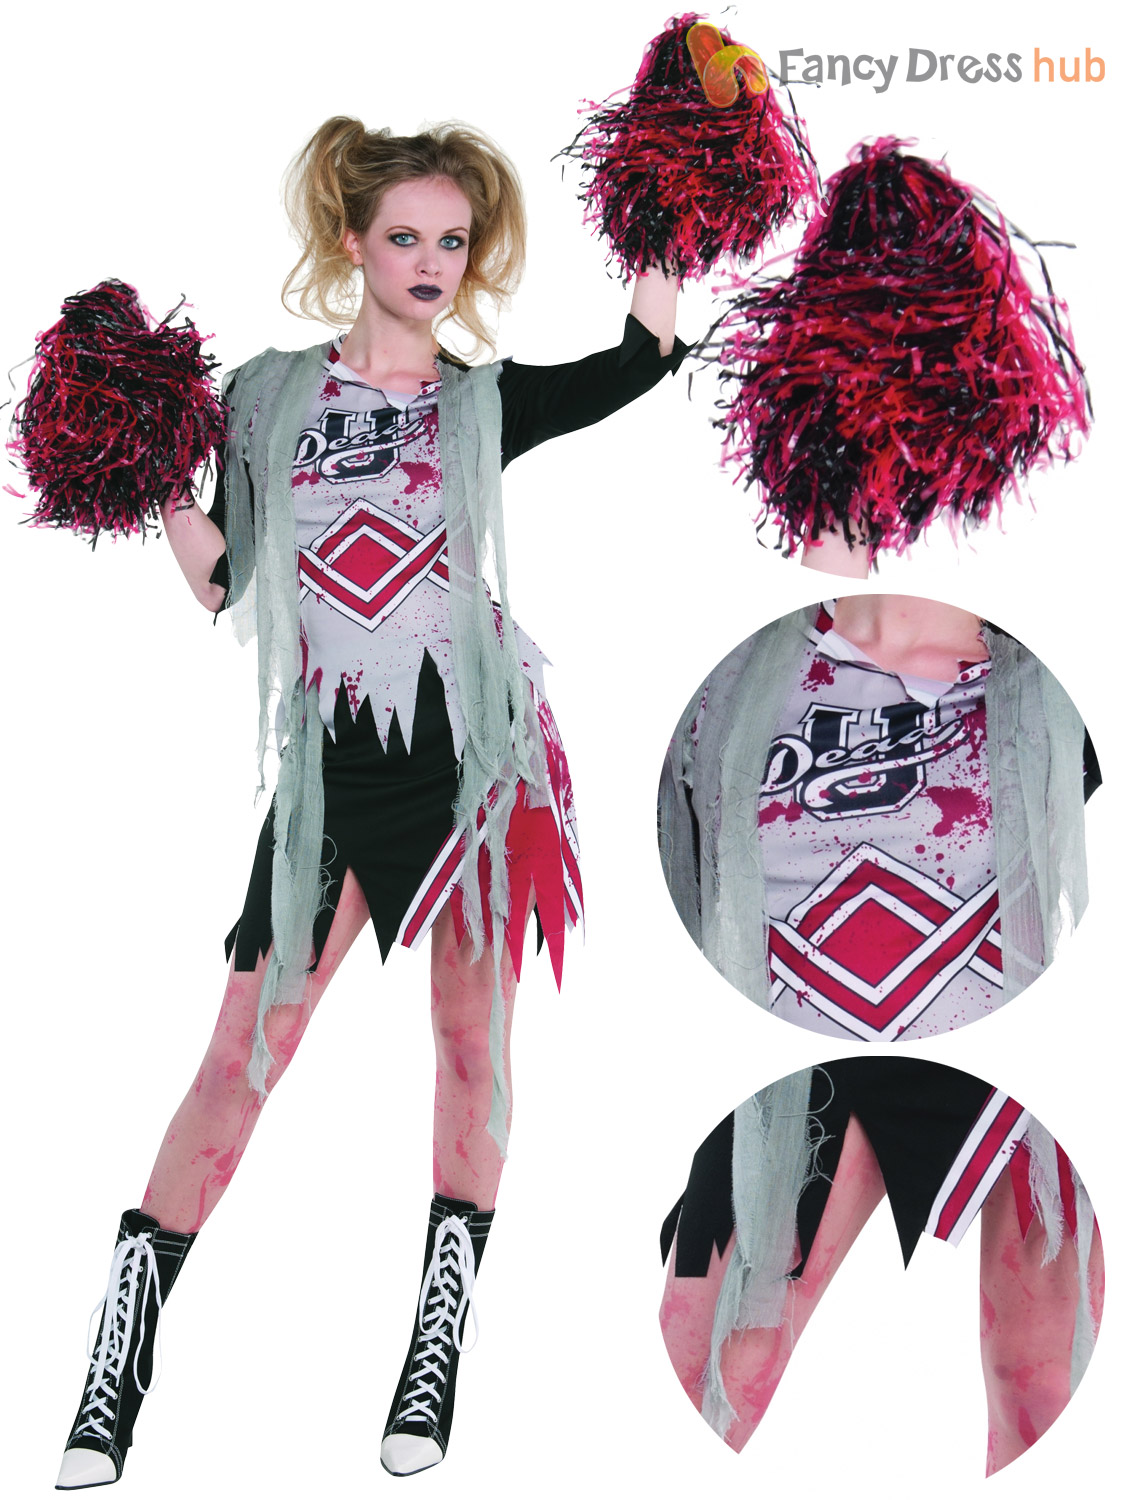 6405a7713baa8 Details about Ladies Cheerless Zombie Costume Adults Cheerleader Halloween  Fancy Dress Teen